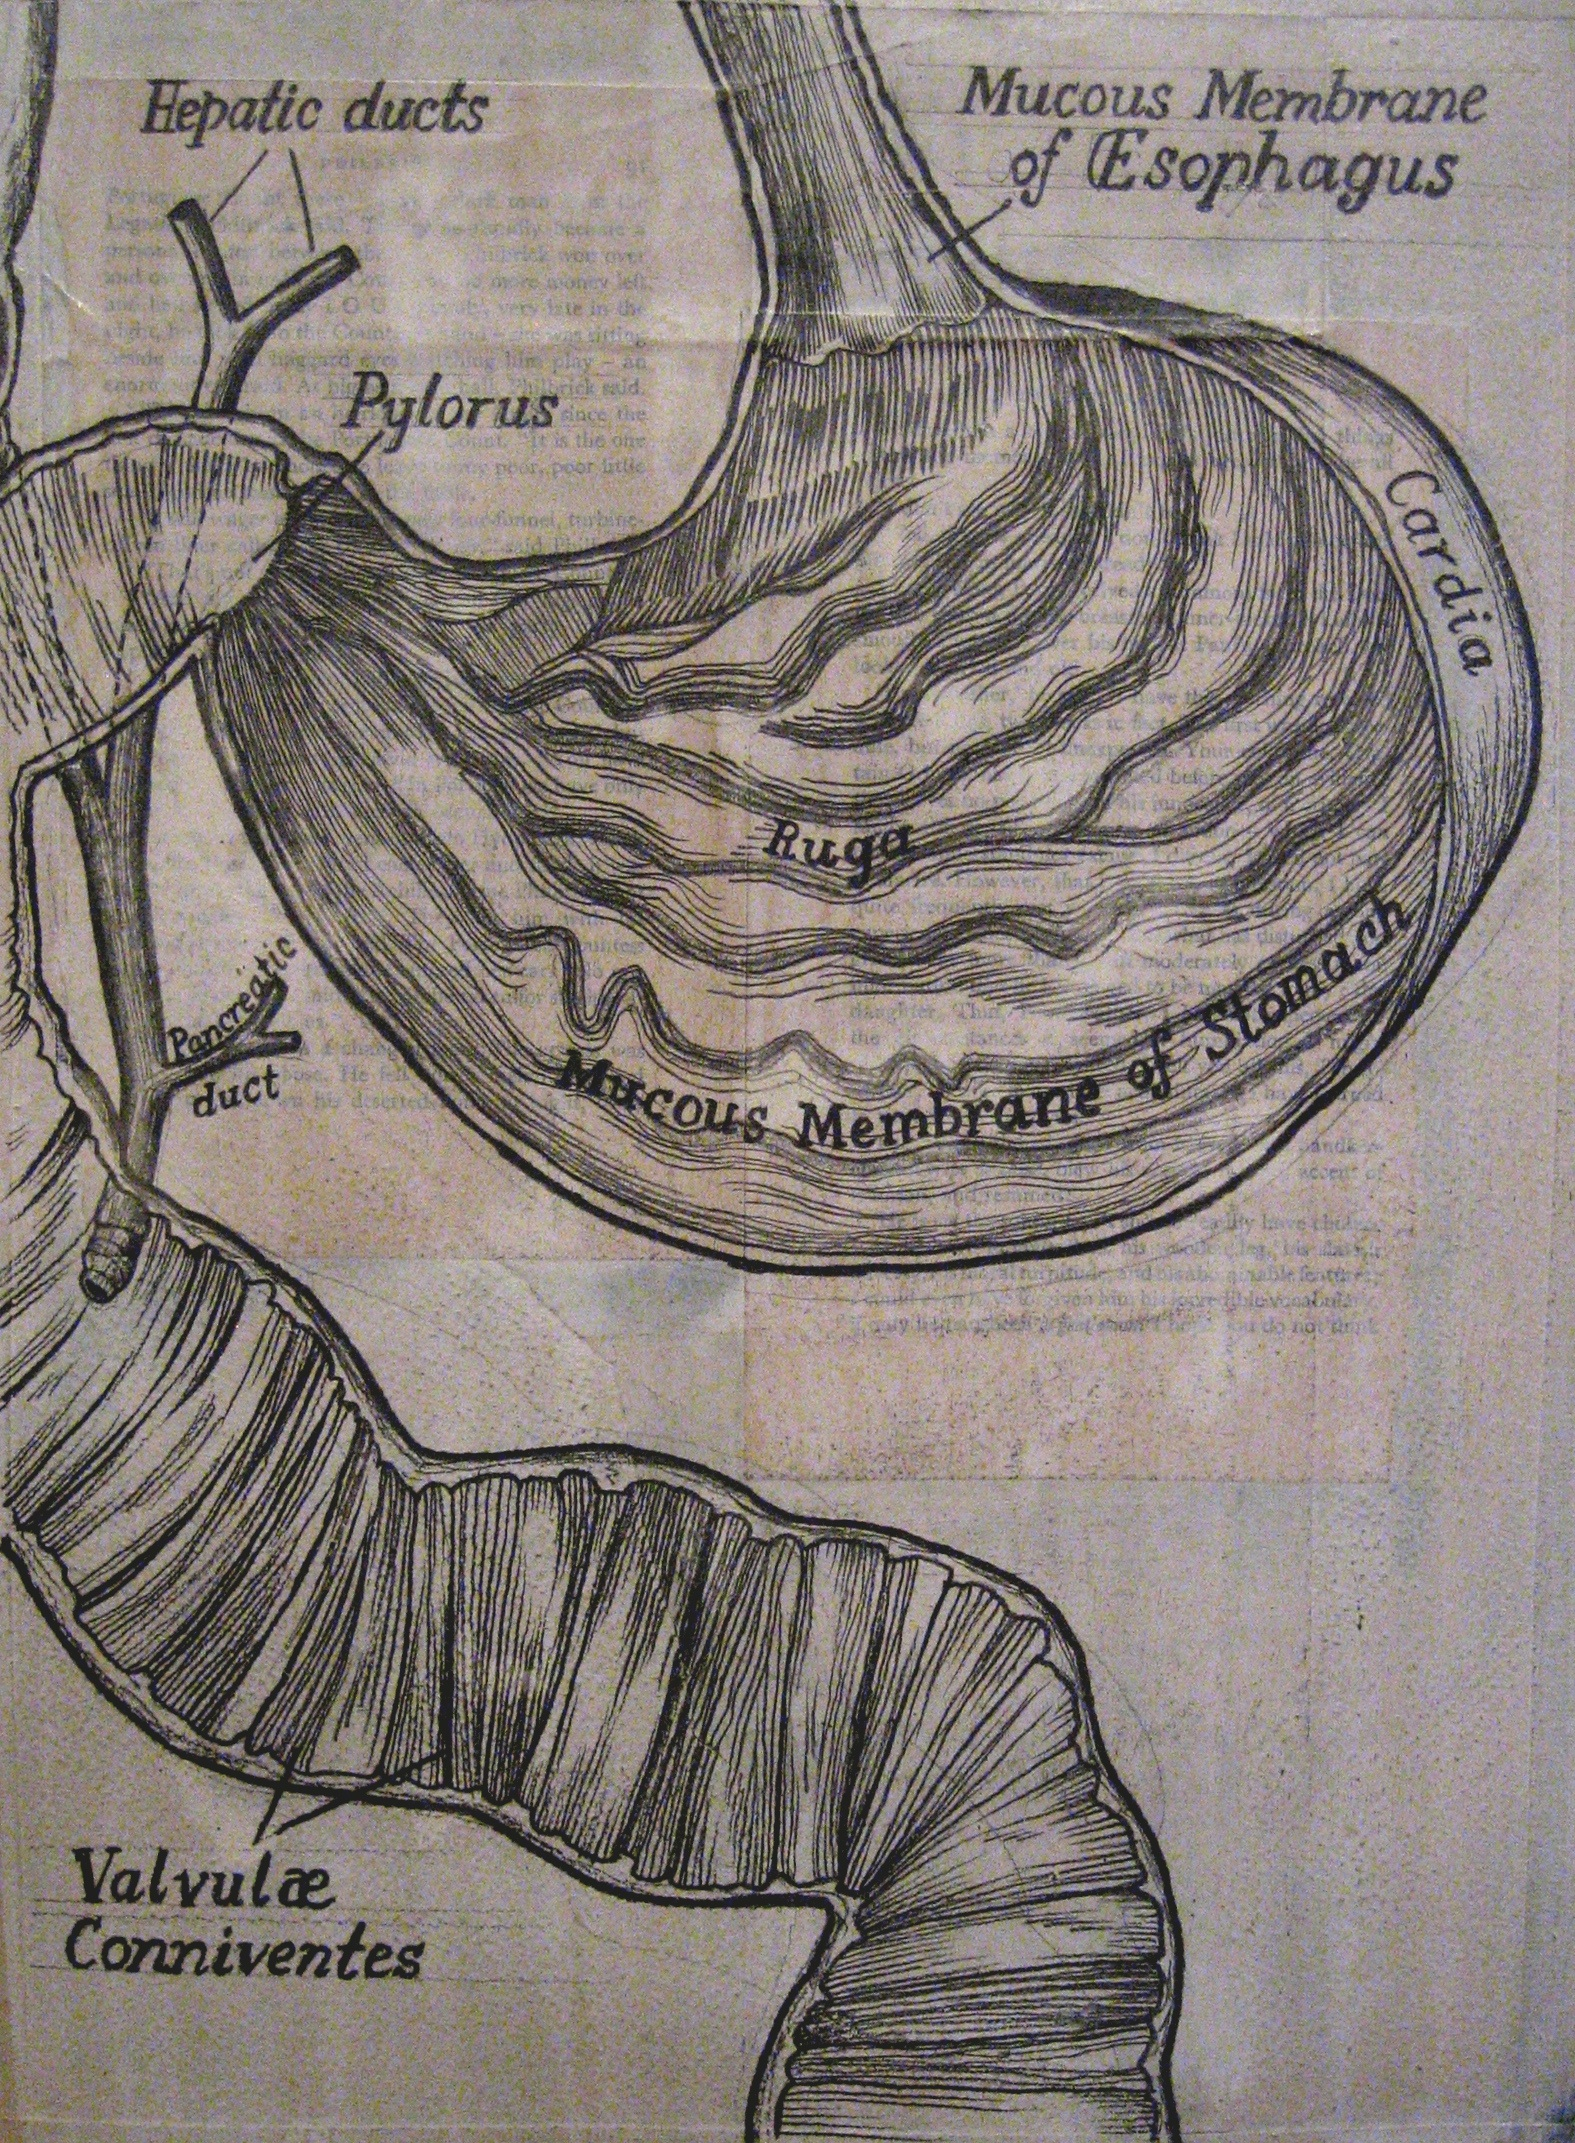 StomachMembraneDissection.jpg